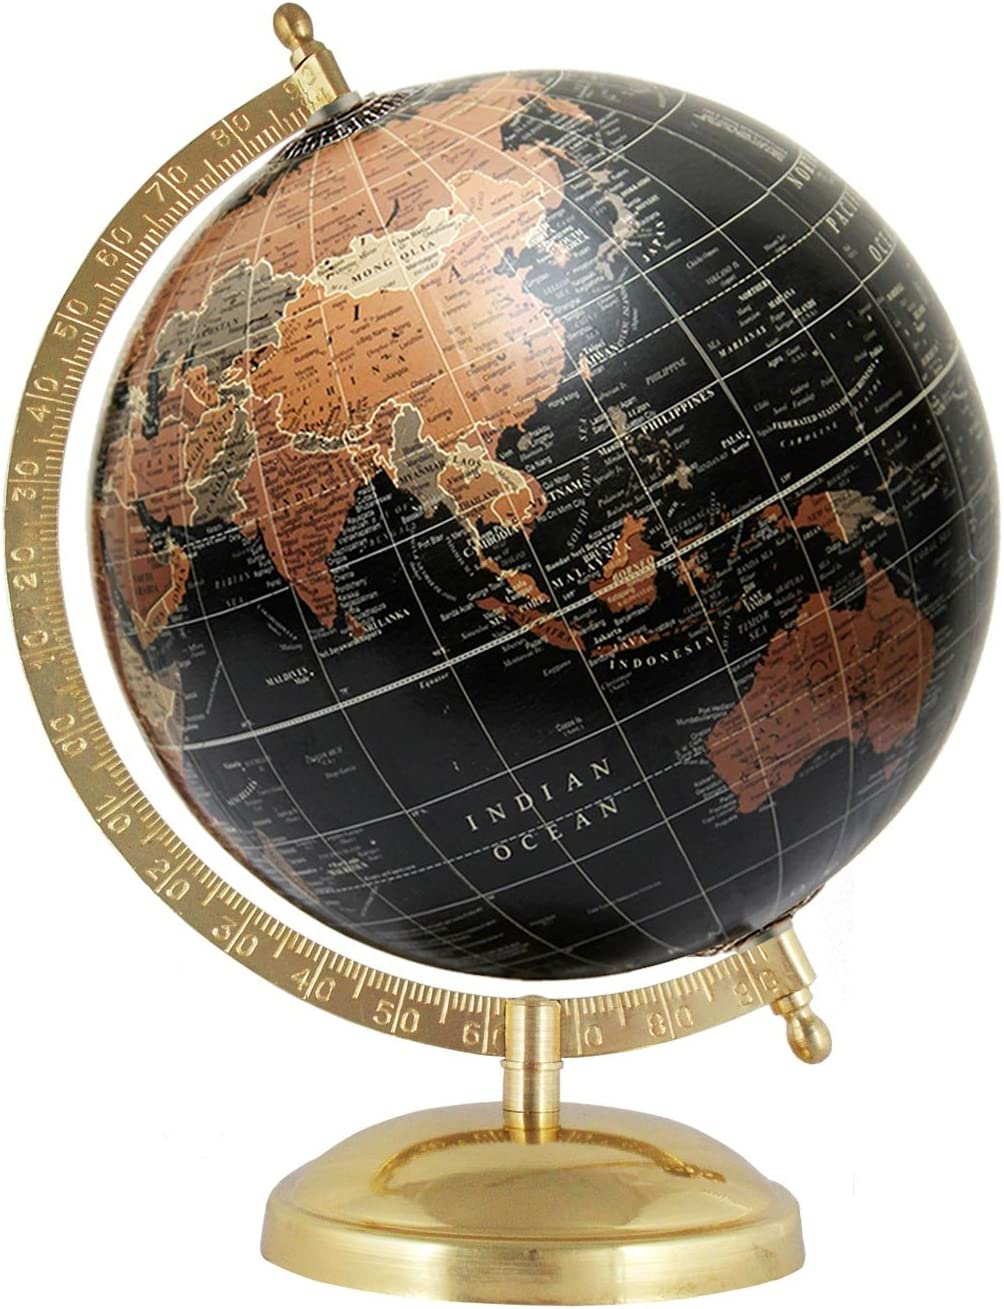 MasterpieceIndia Rotating Globe Black Home Office Decor Decorative World Map 8 Inches Diameter Geography Handmade Antique Gift